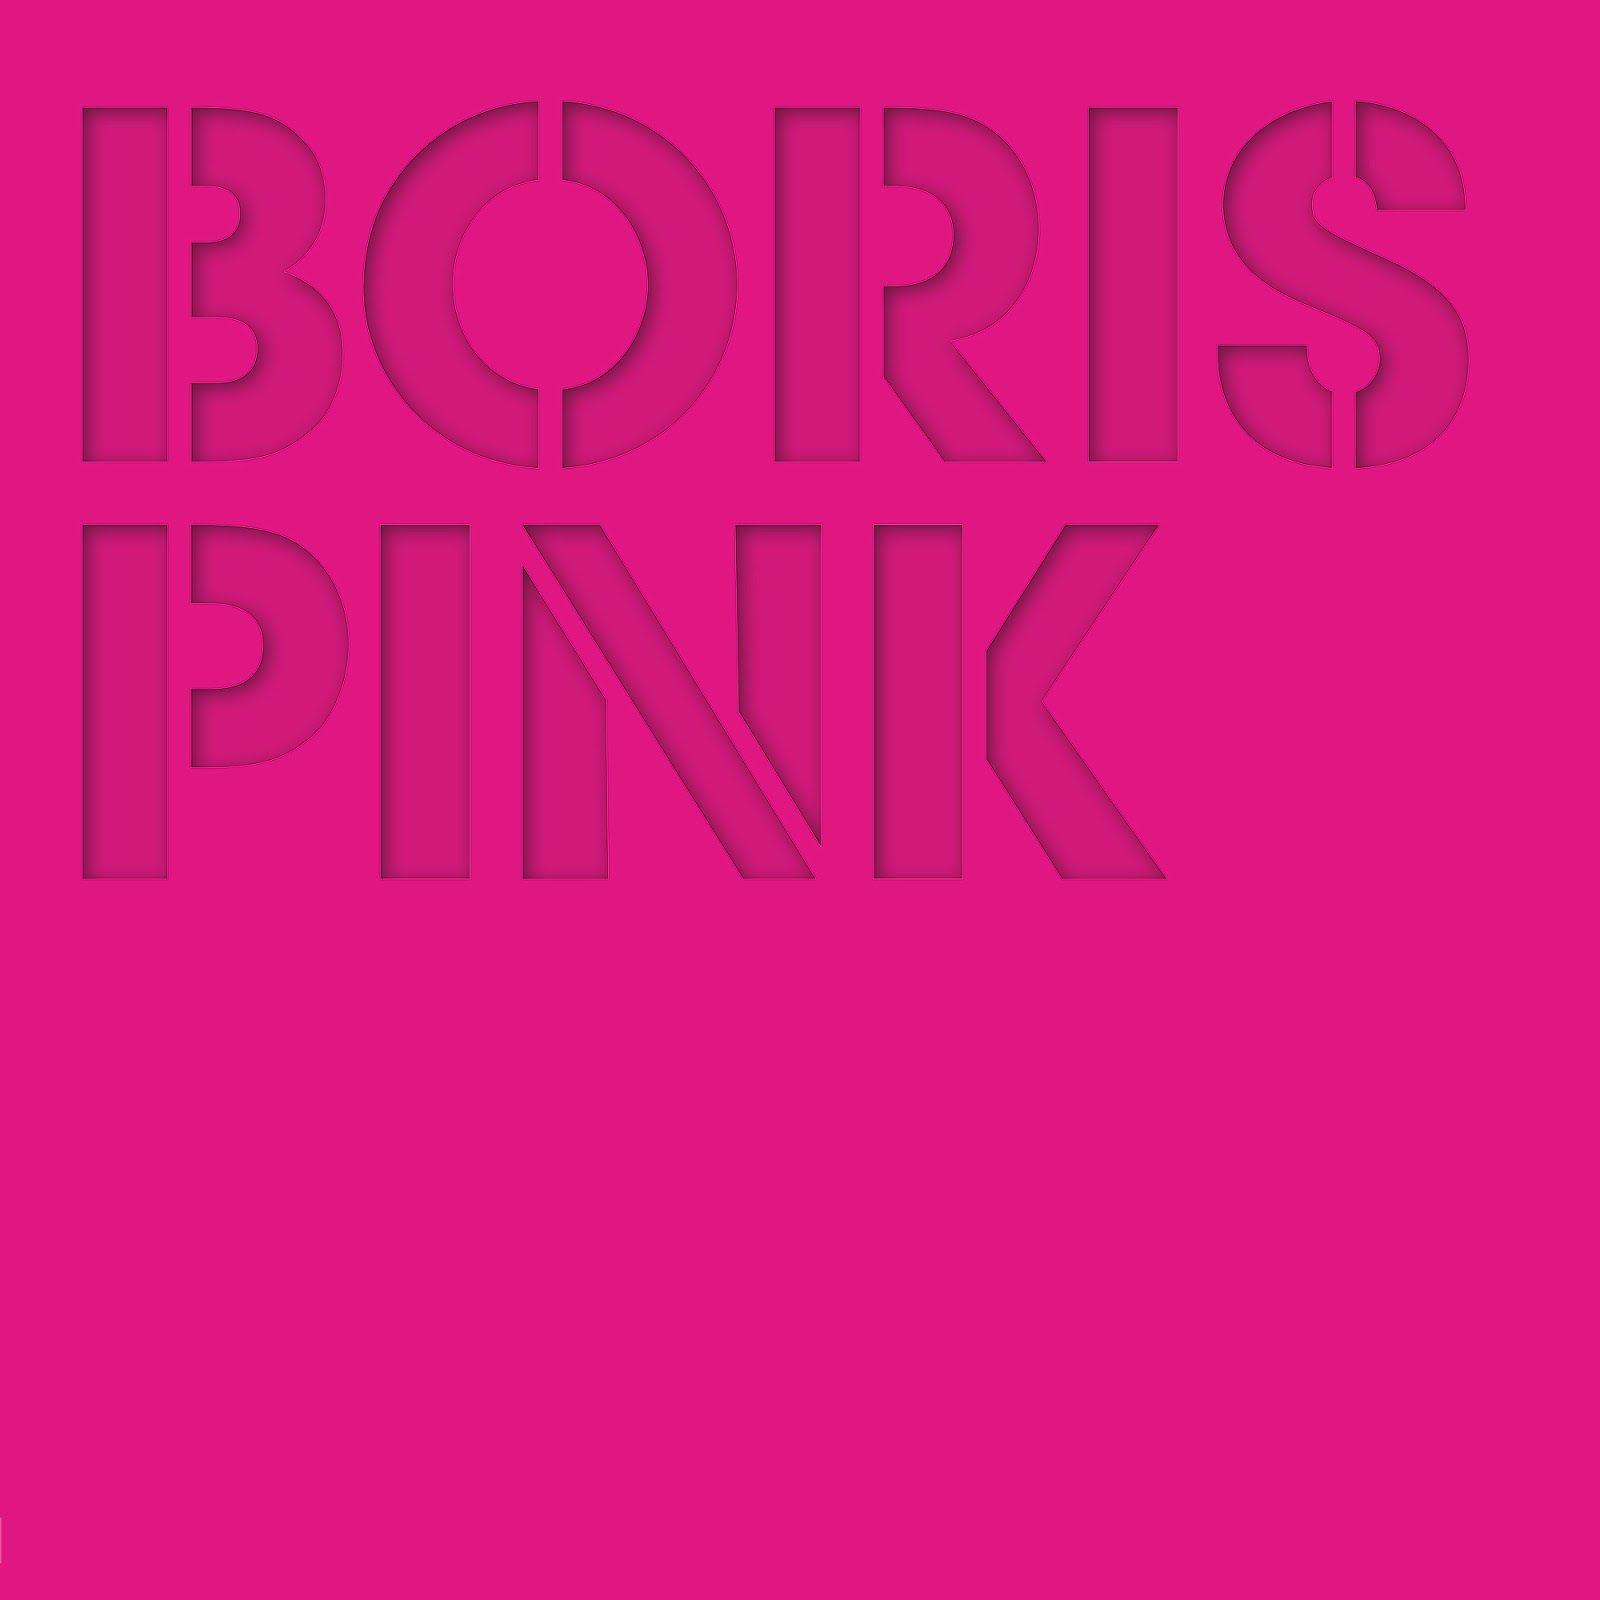 'Pink' (Deluxe reissue) 10th anniversary by Boris, reviewed by Matthew Wardell.